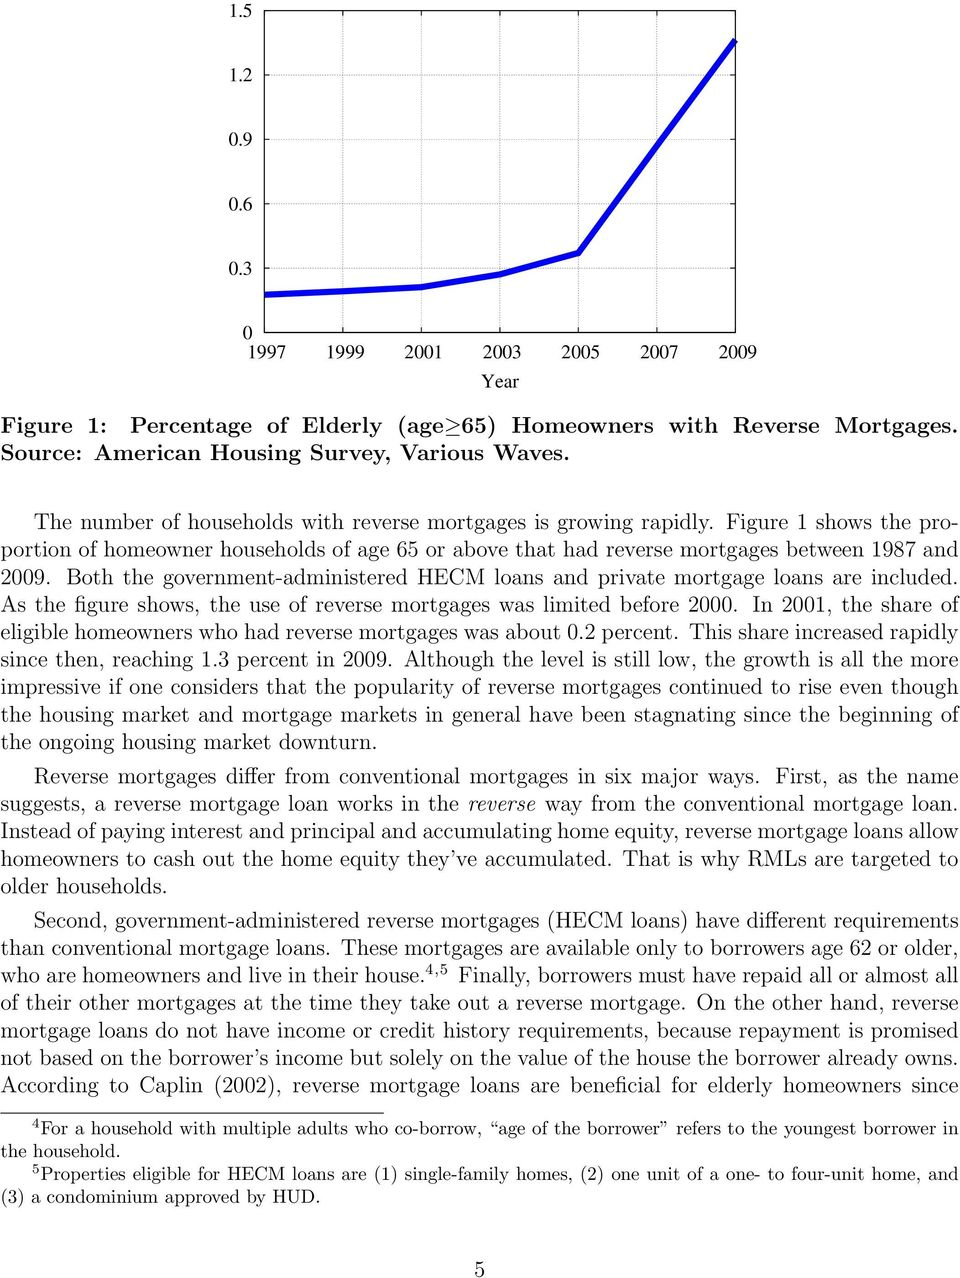 Both the government-administered HECM loans and private mortgage loans are included. As the figure shows, the use of reverse mortgages was limited before 2000.